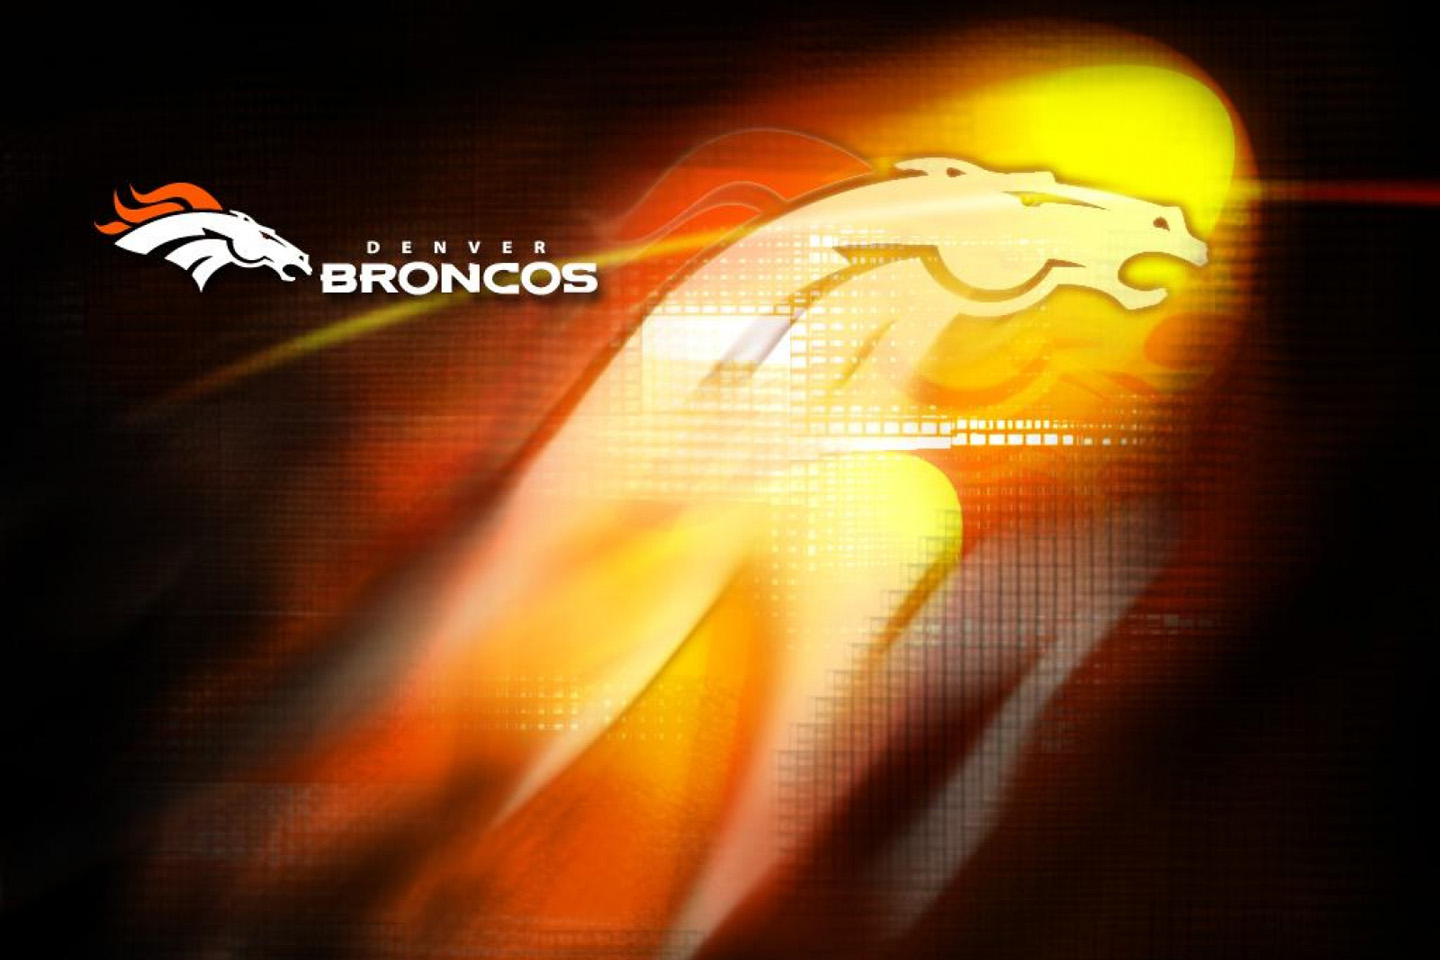 Denver-Broncos-Desktop-Denver-Broncos-Logo-wallpaper-wp6002929